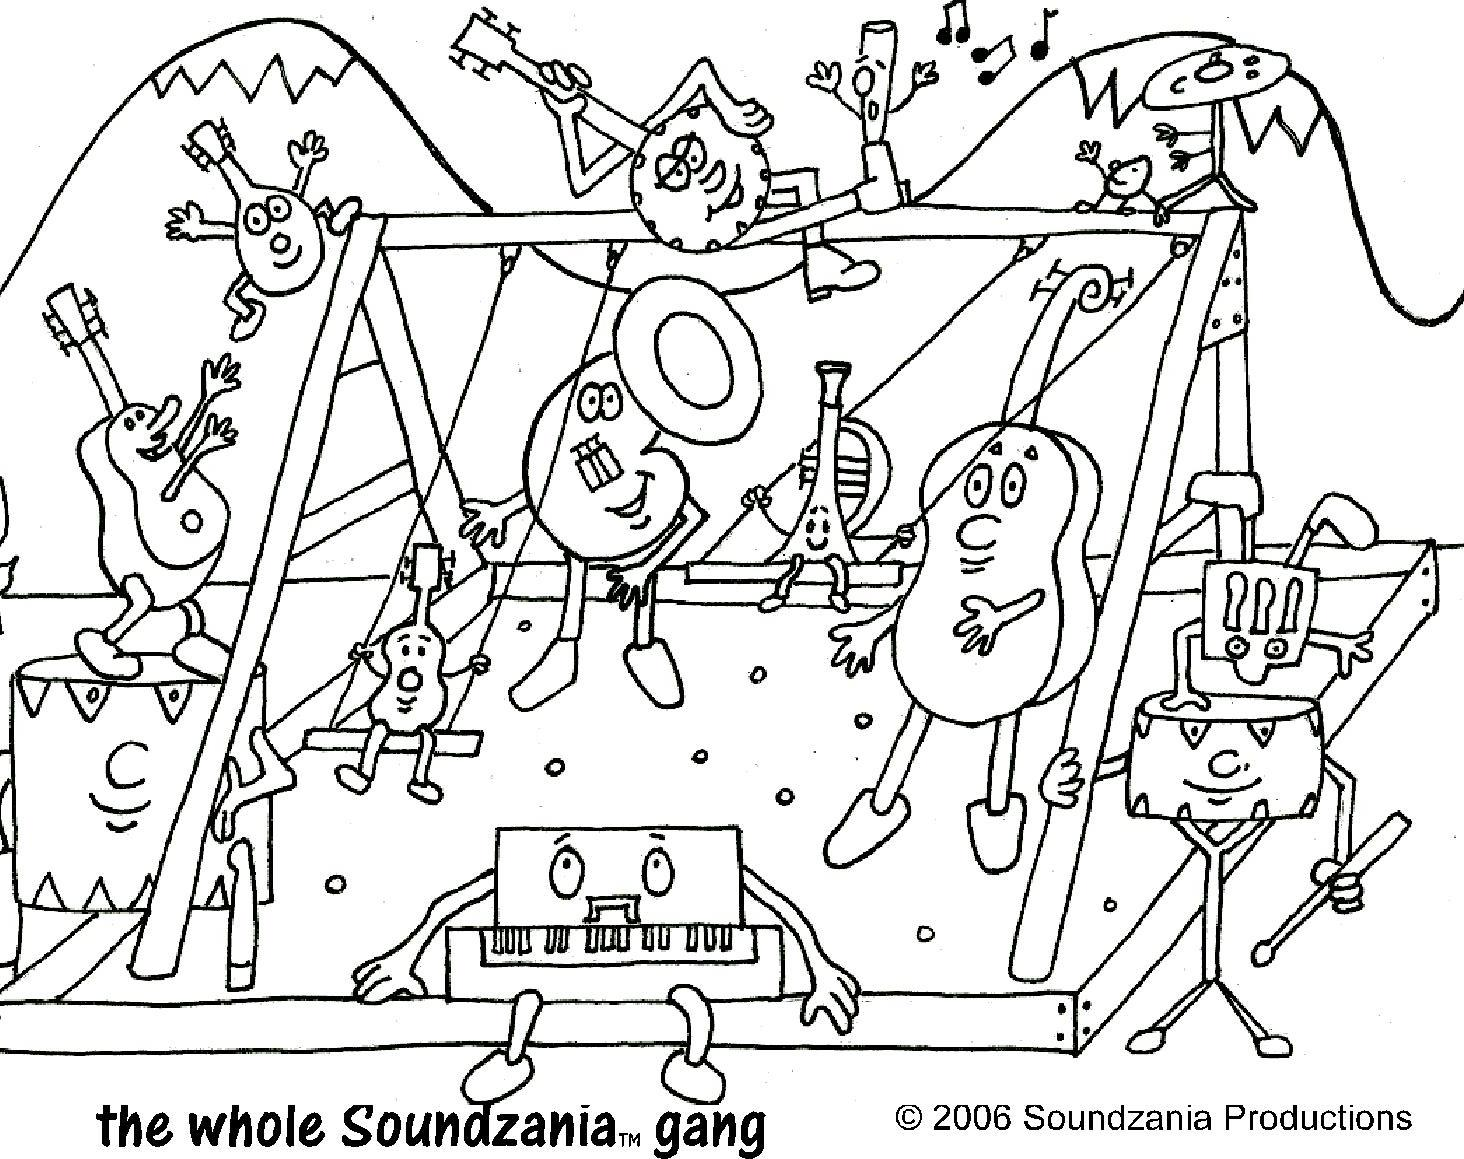 Soundzania Coloring Pages Coloring Pages For Elementary